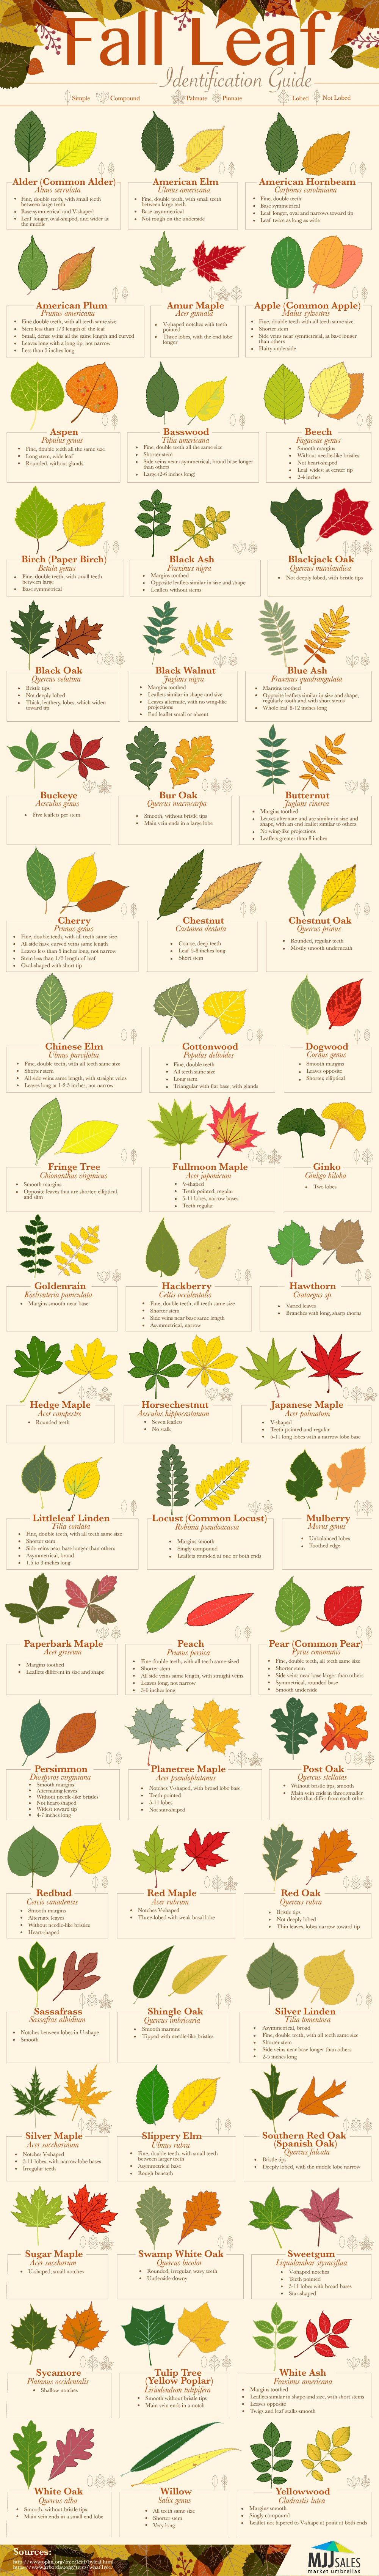 Fall Leaf Identification Guide